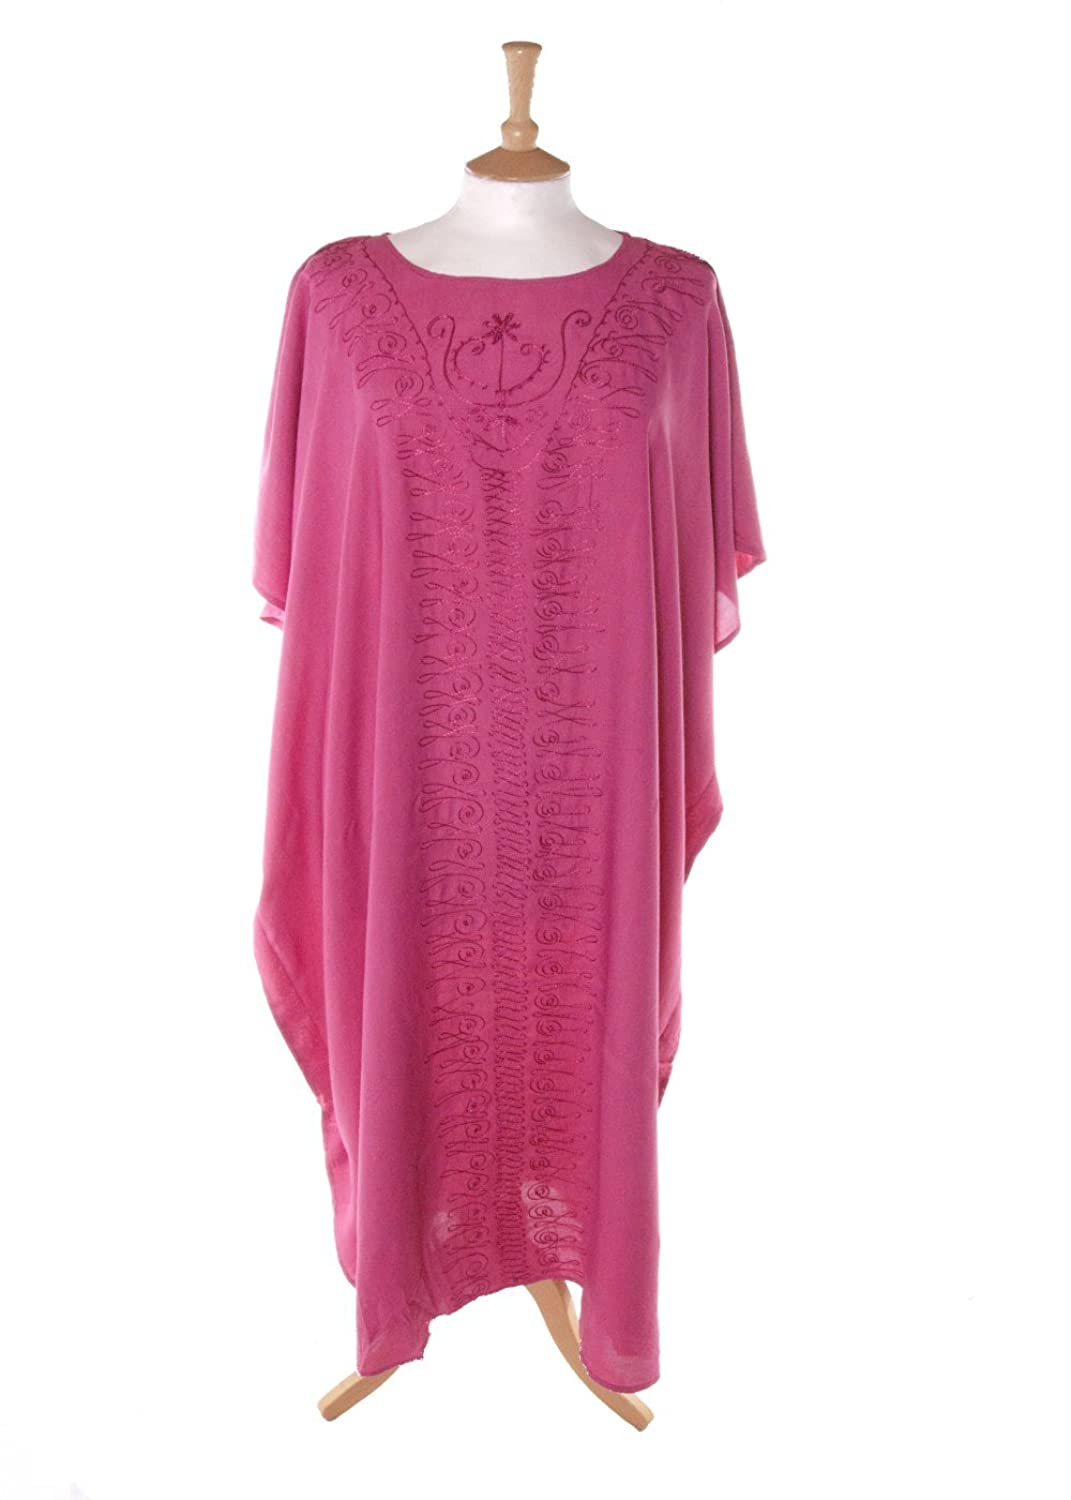 Didi 6064 Plain Beaded Kaftan in Pink sizes 14-34